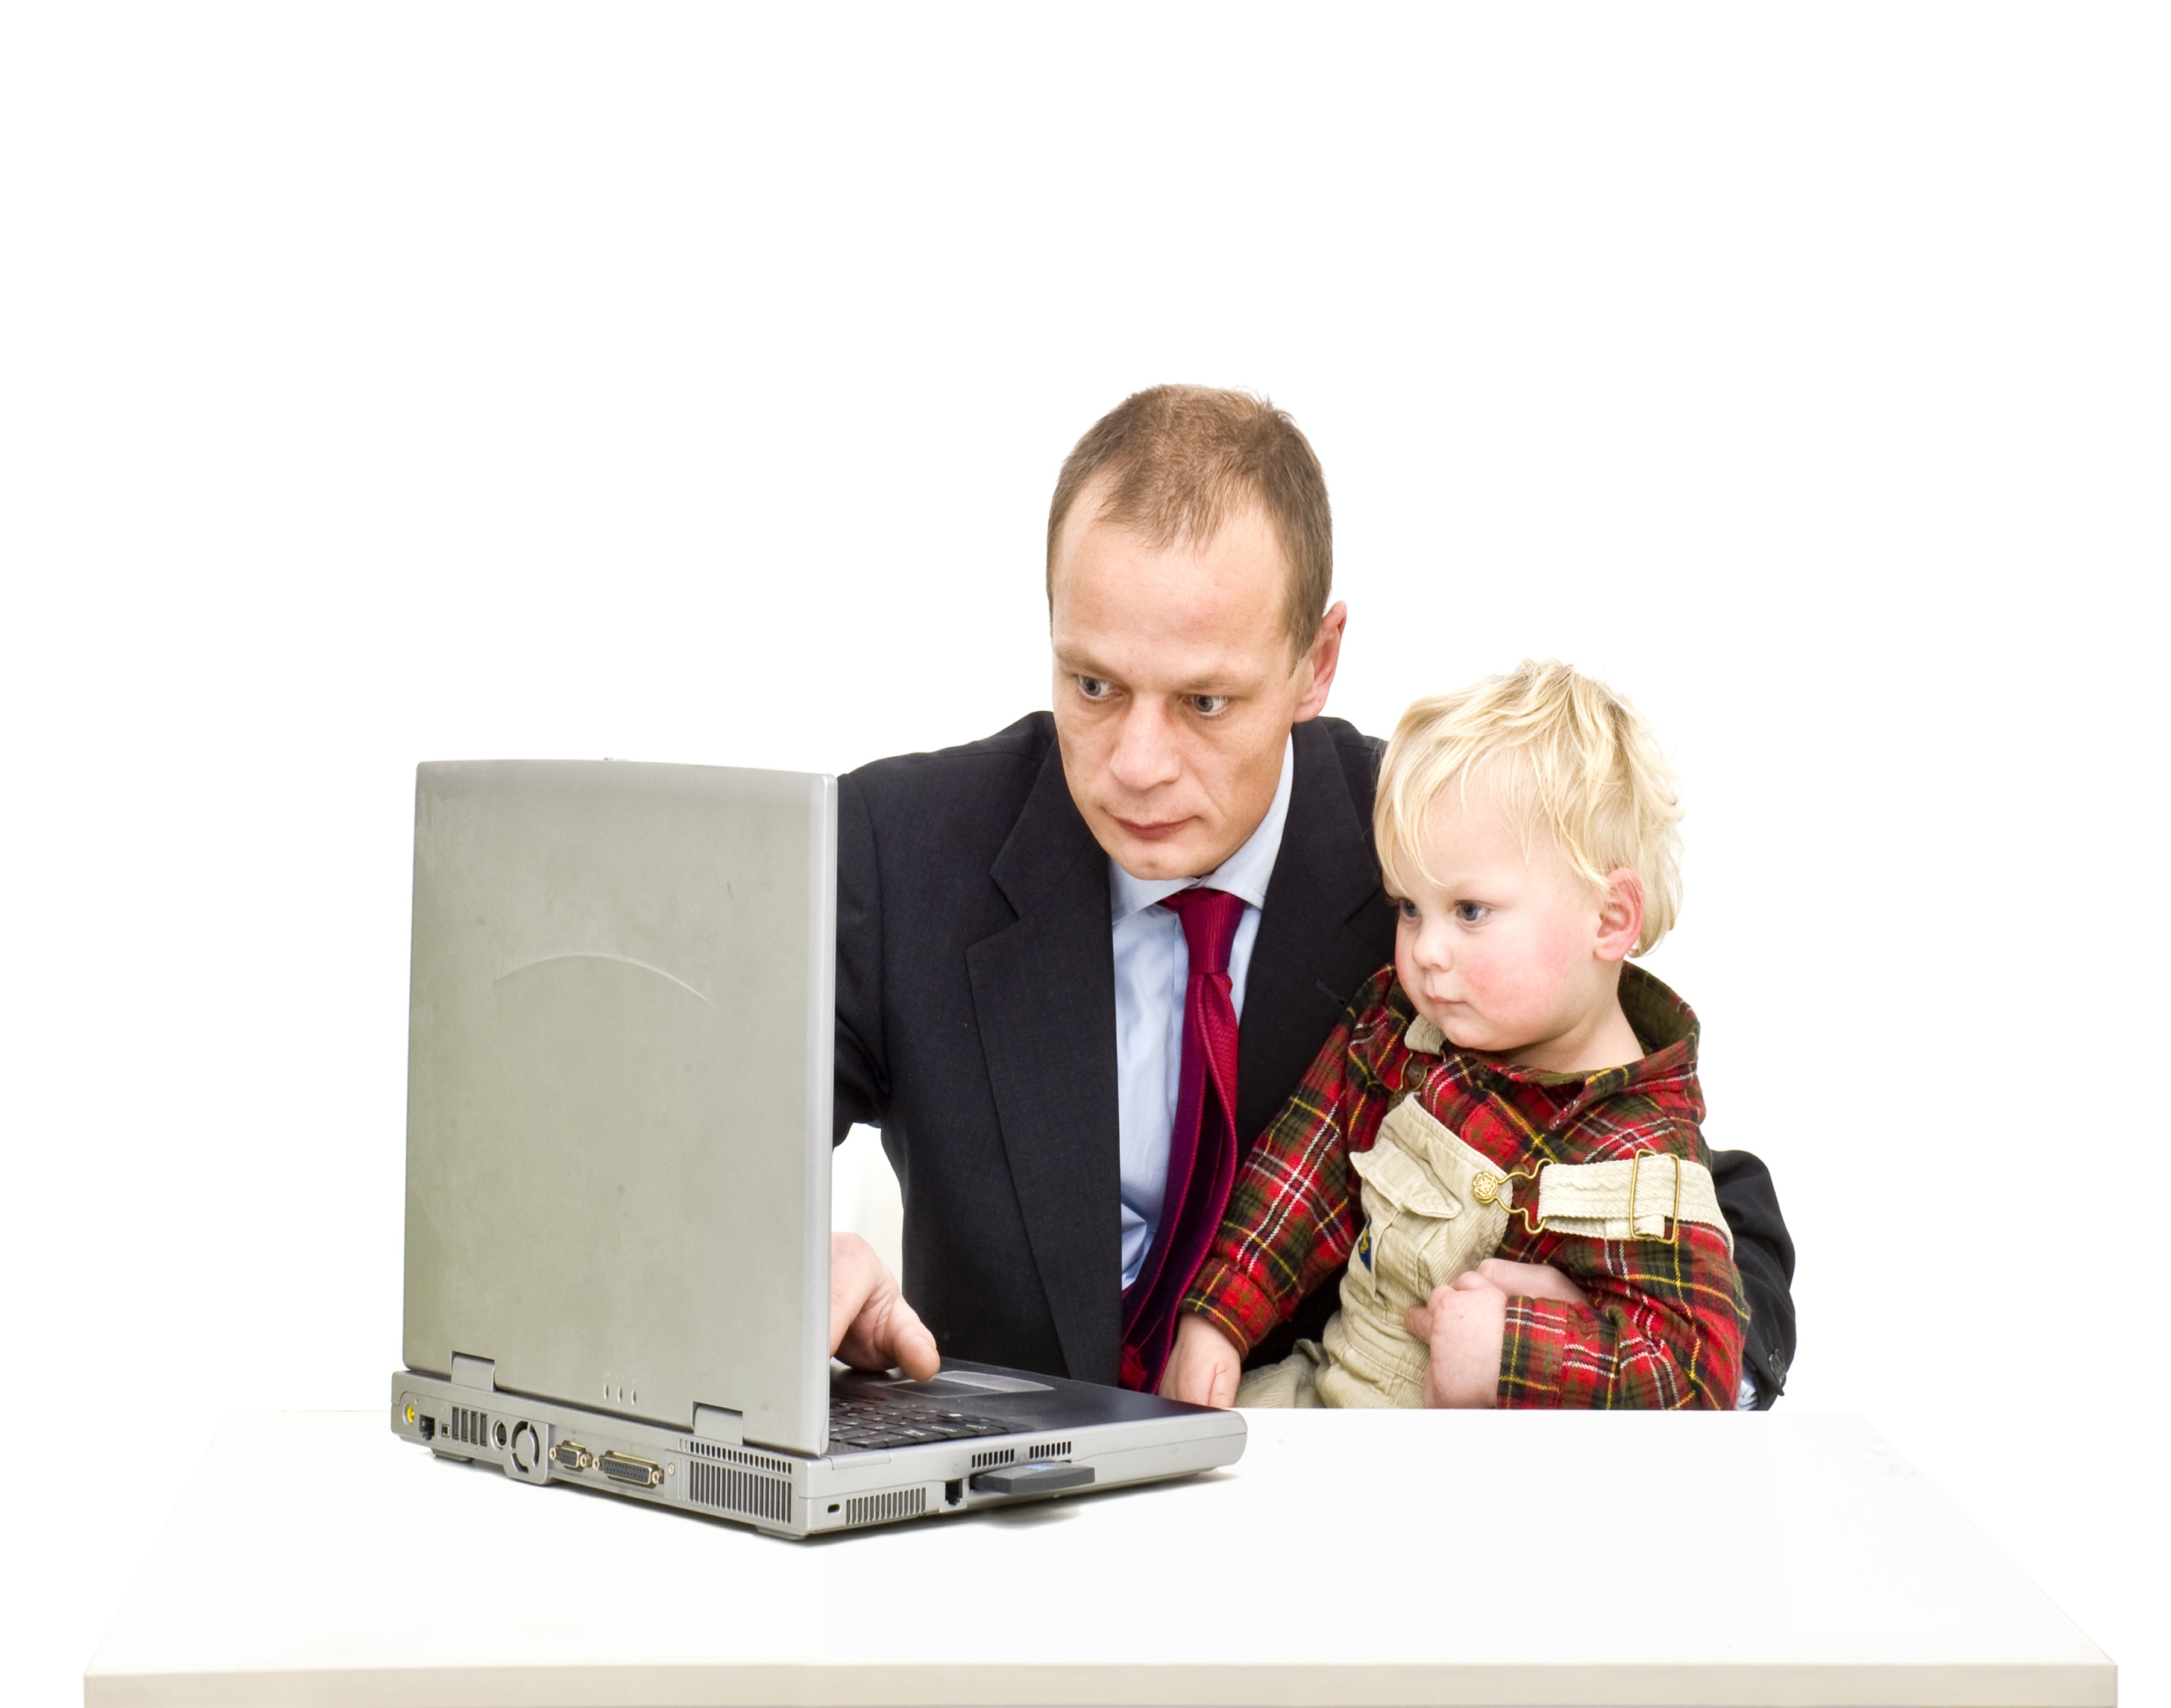 Working father